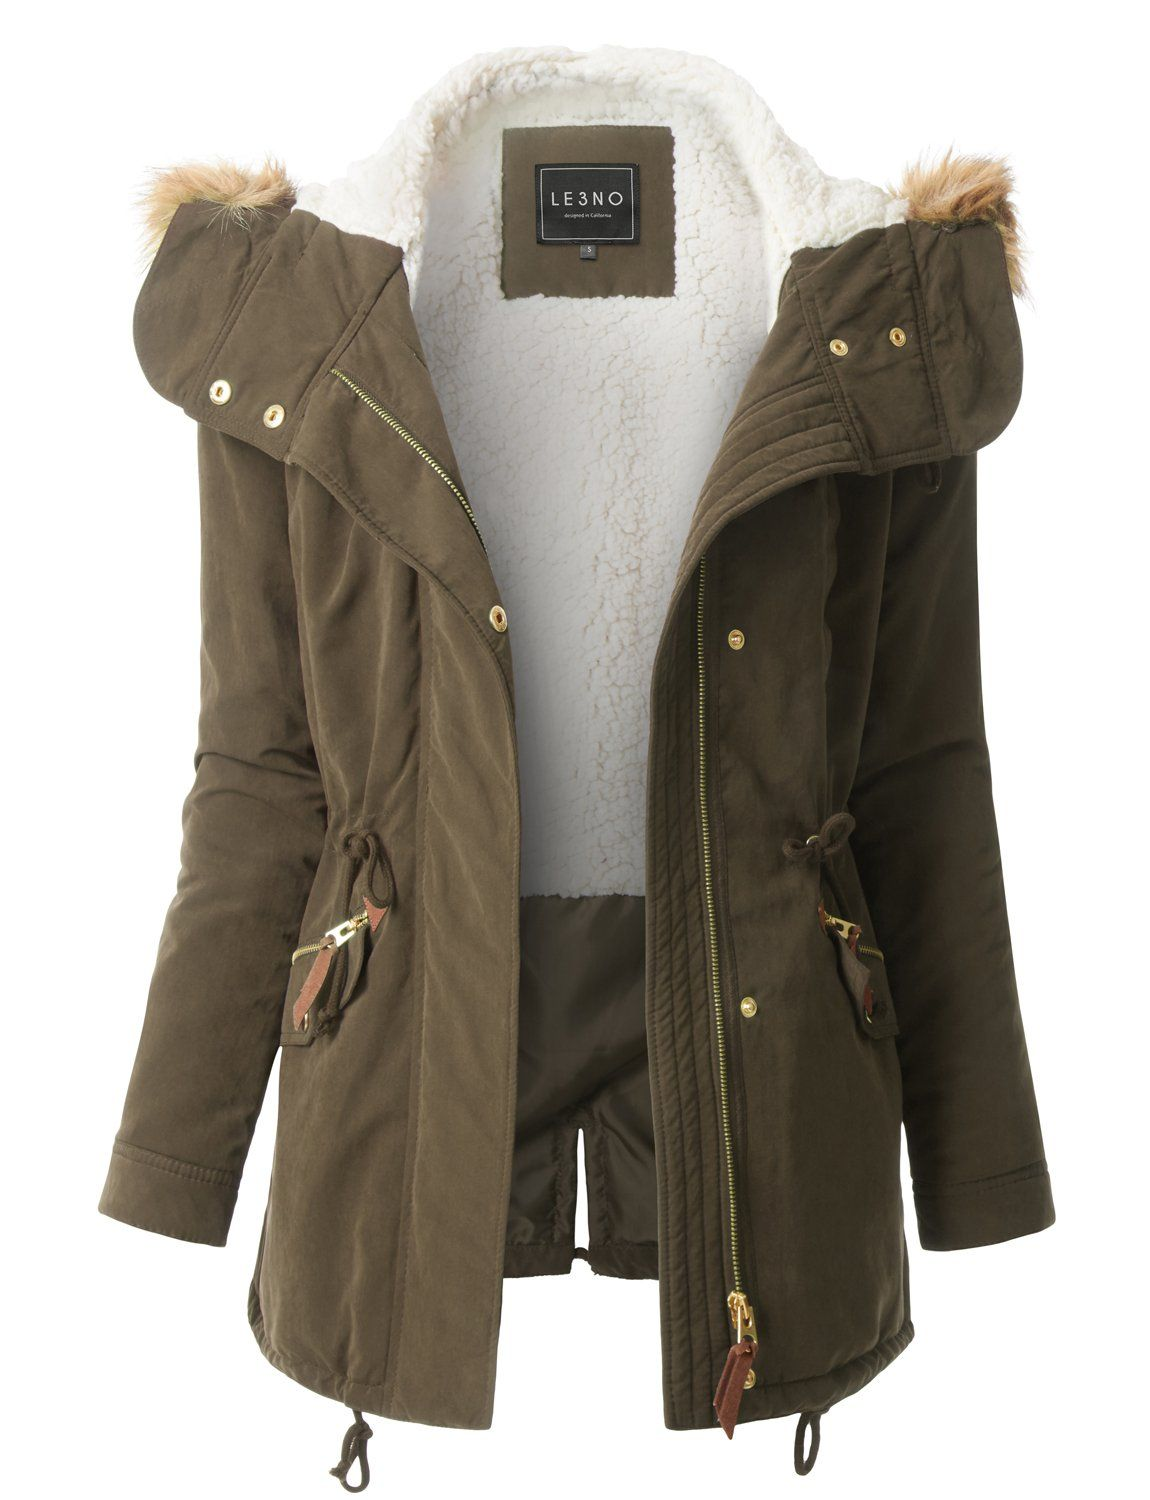 79d356b508f LE3NO Womens Fleece Lined Anorak Military Parka Jacket with Faux Fur Hoodie